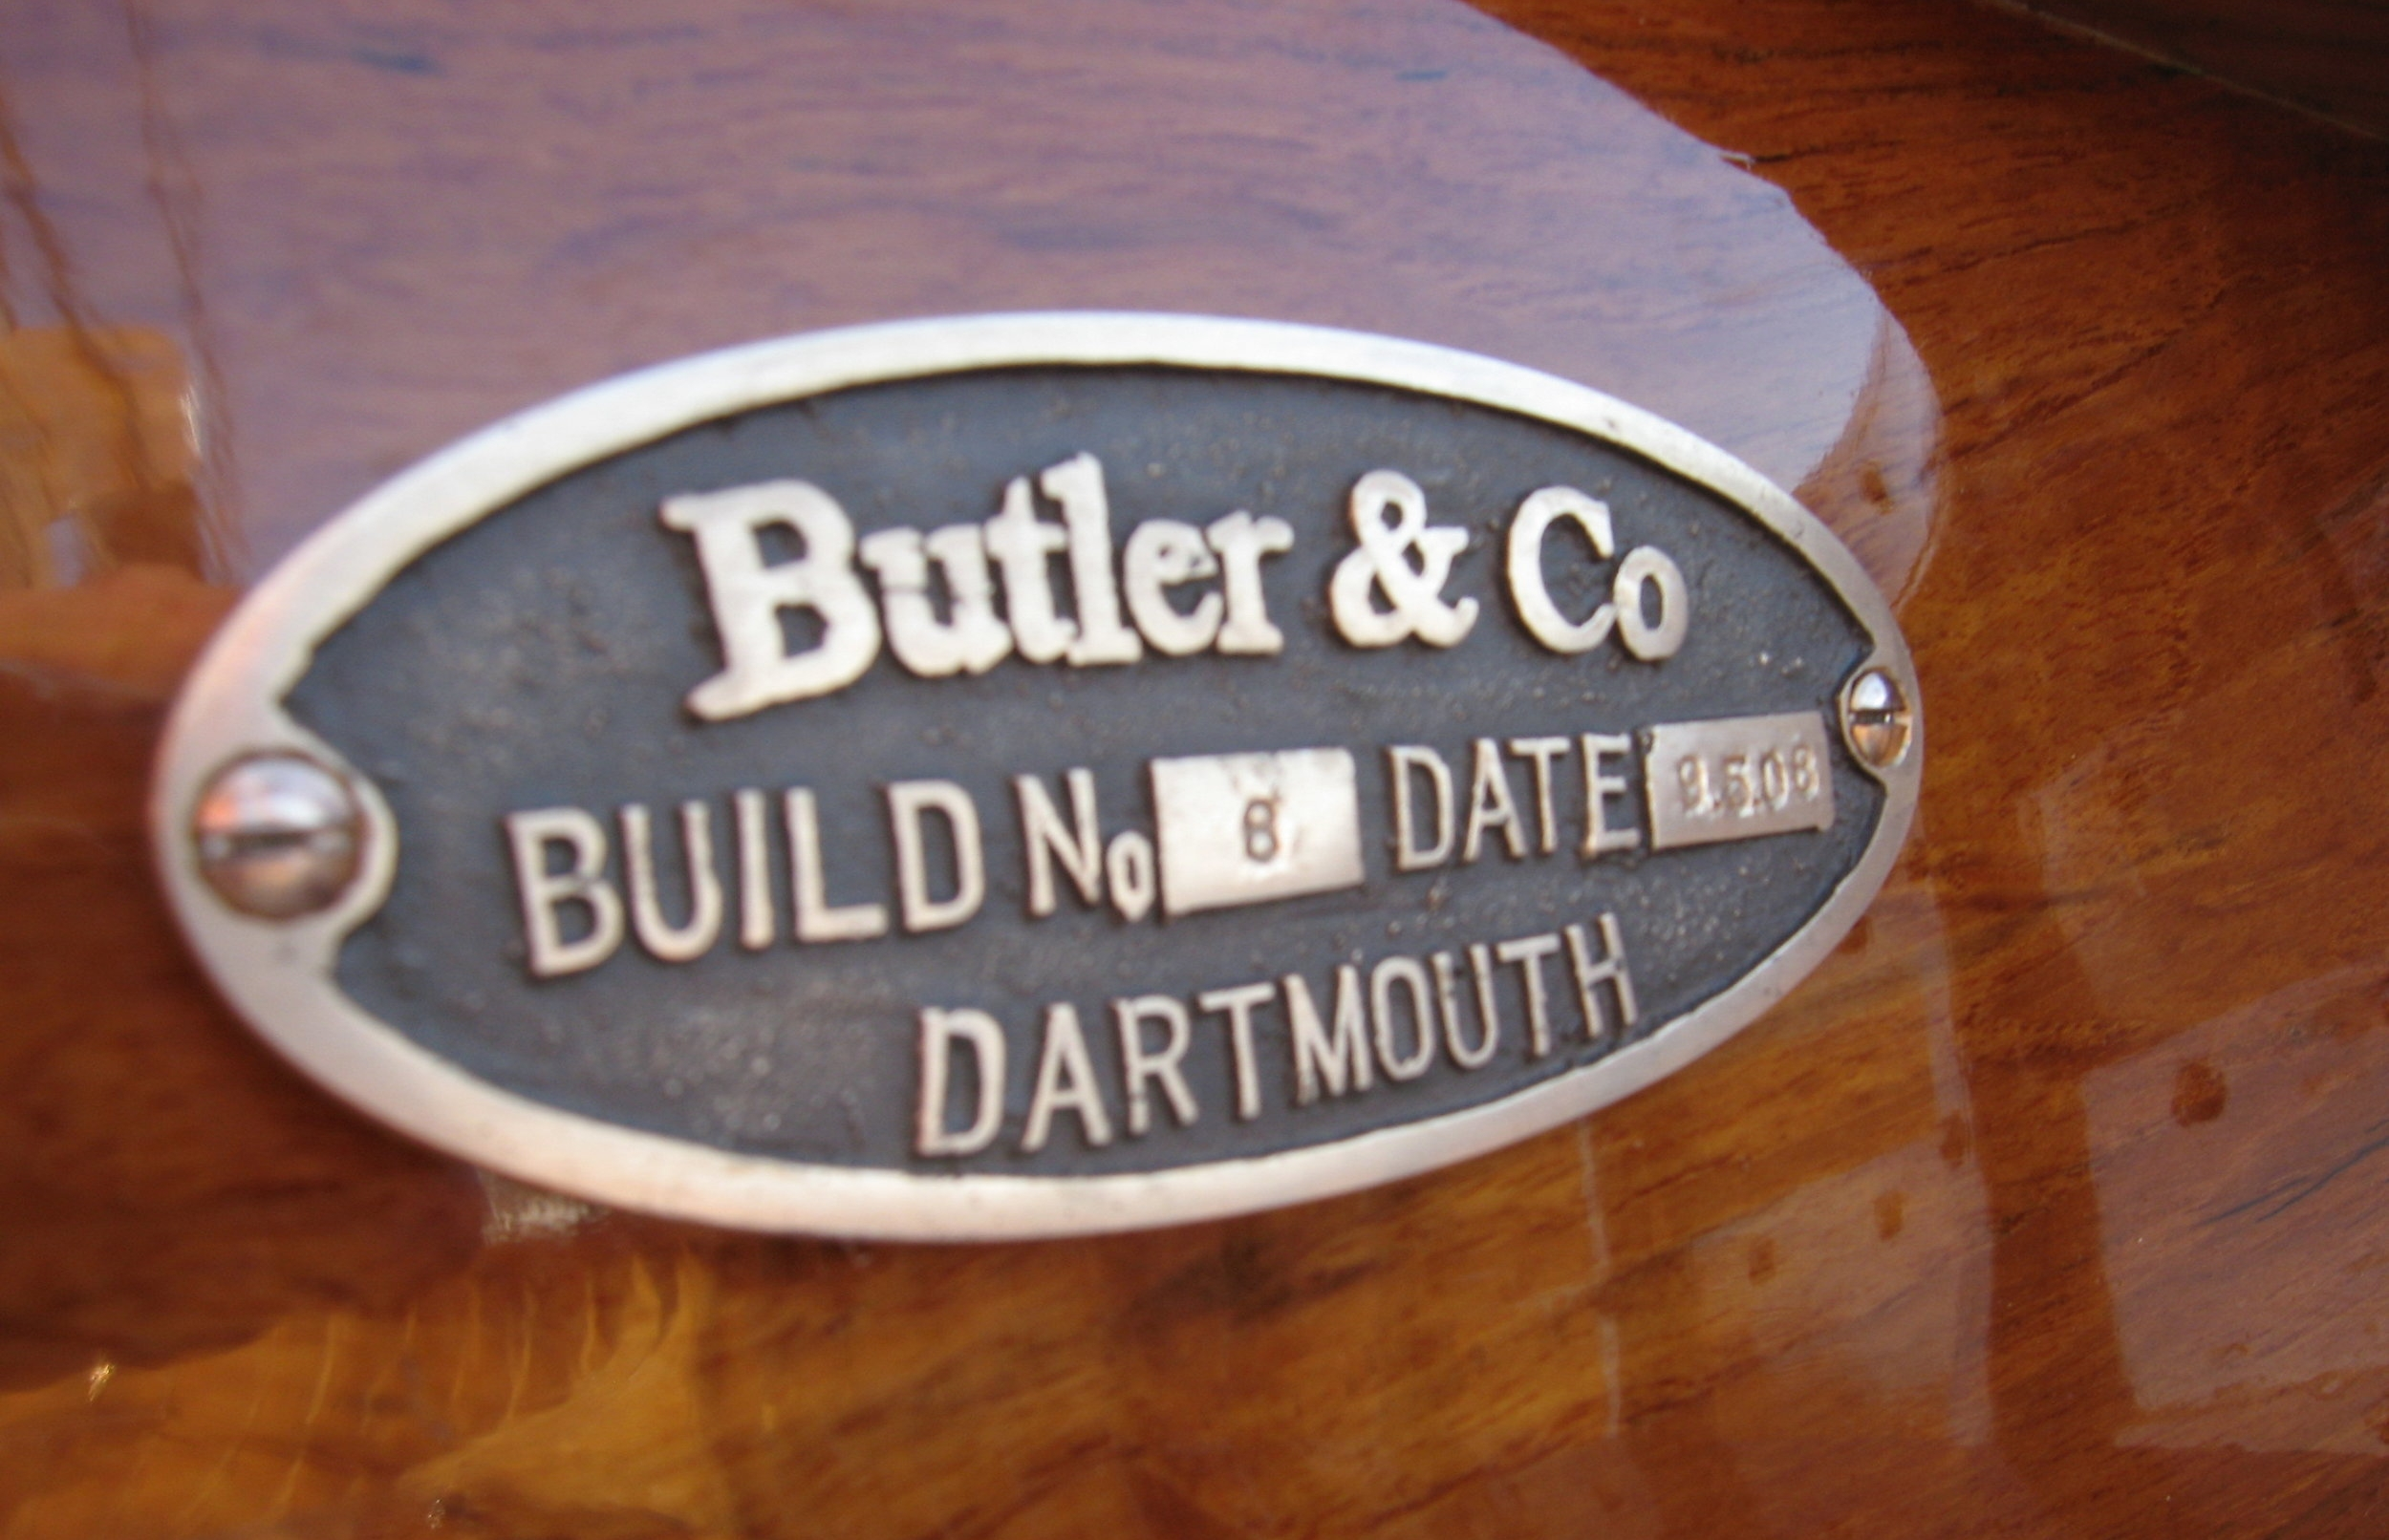 Each Butler & Co vessel is fitted with a unique builders plaque, detailing build number and date